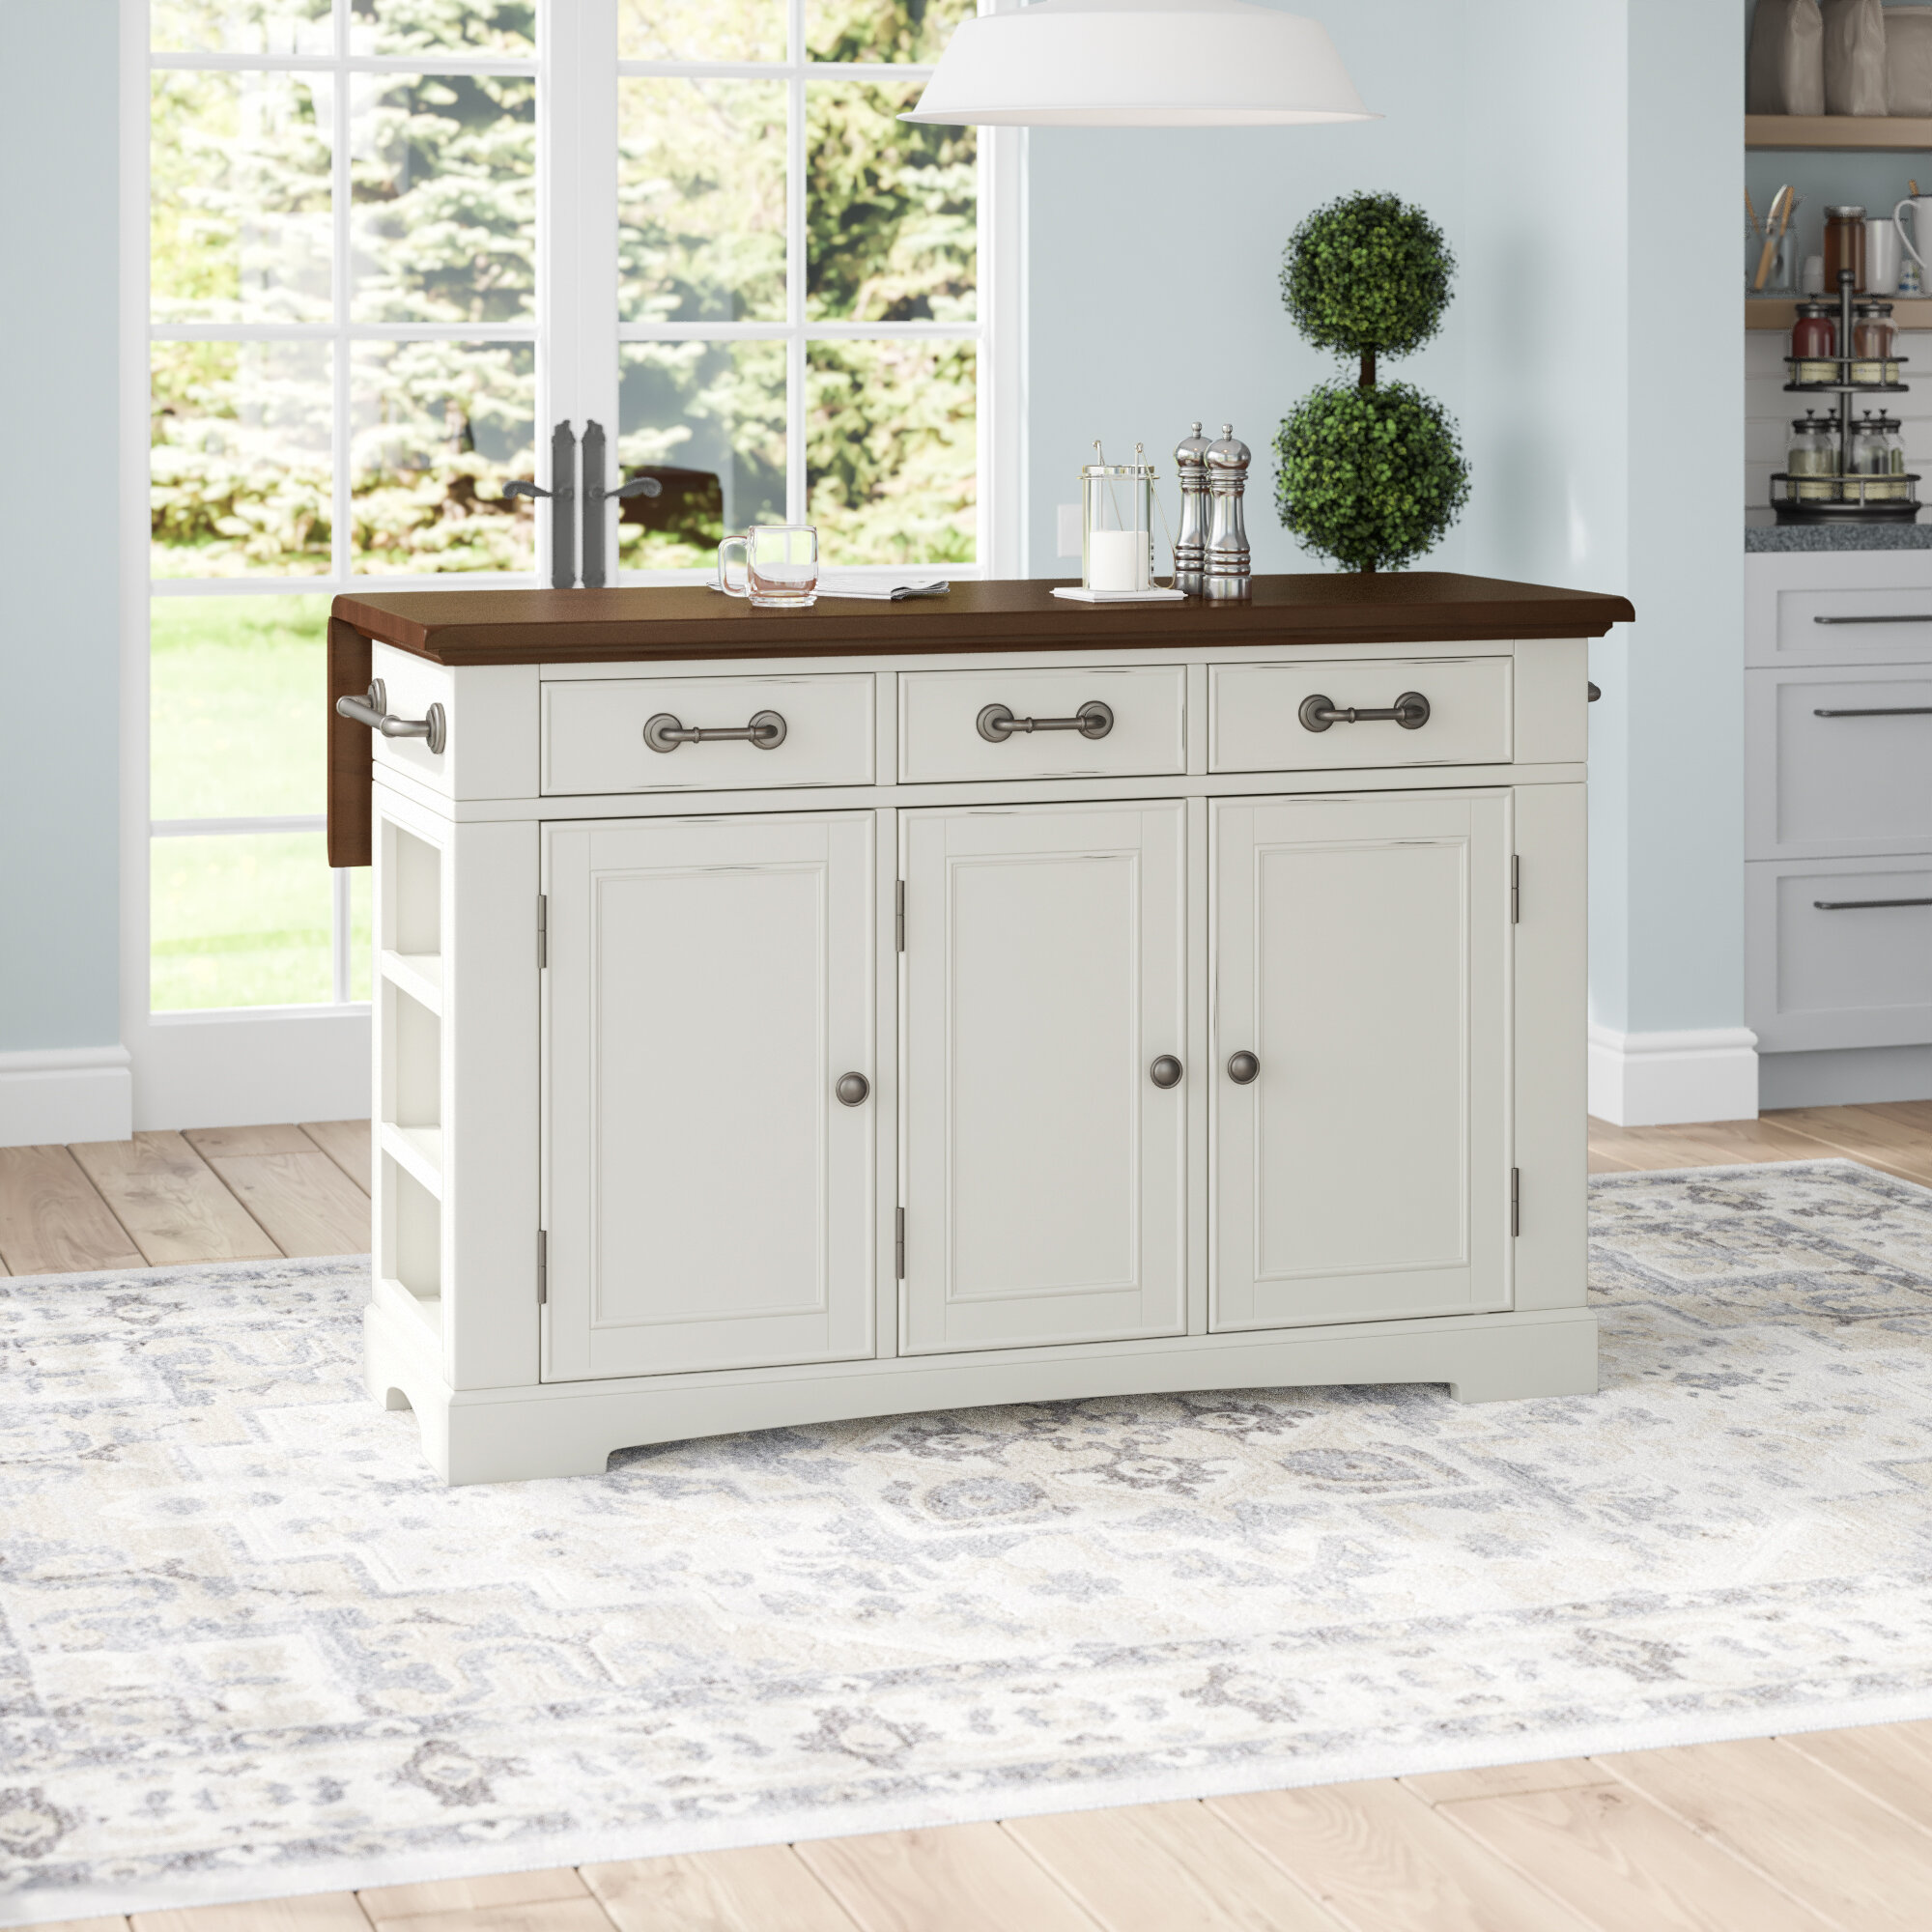 Darby Home Co Maile Large Kitchen Island Reviews Wayfair